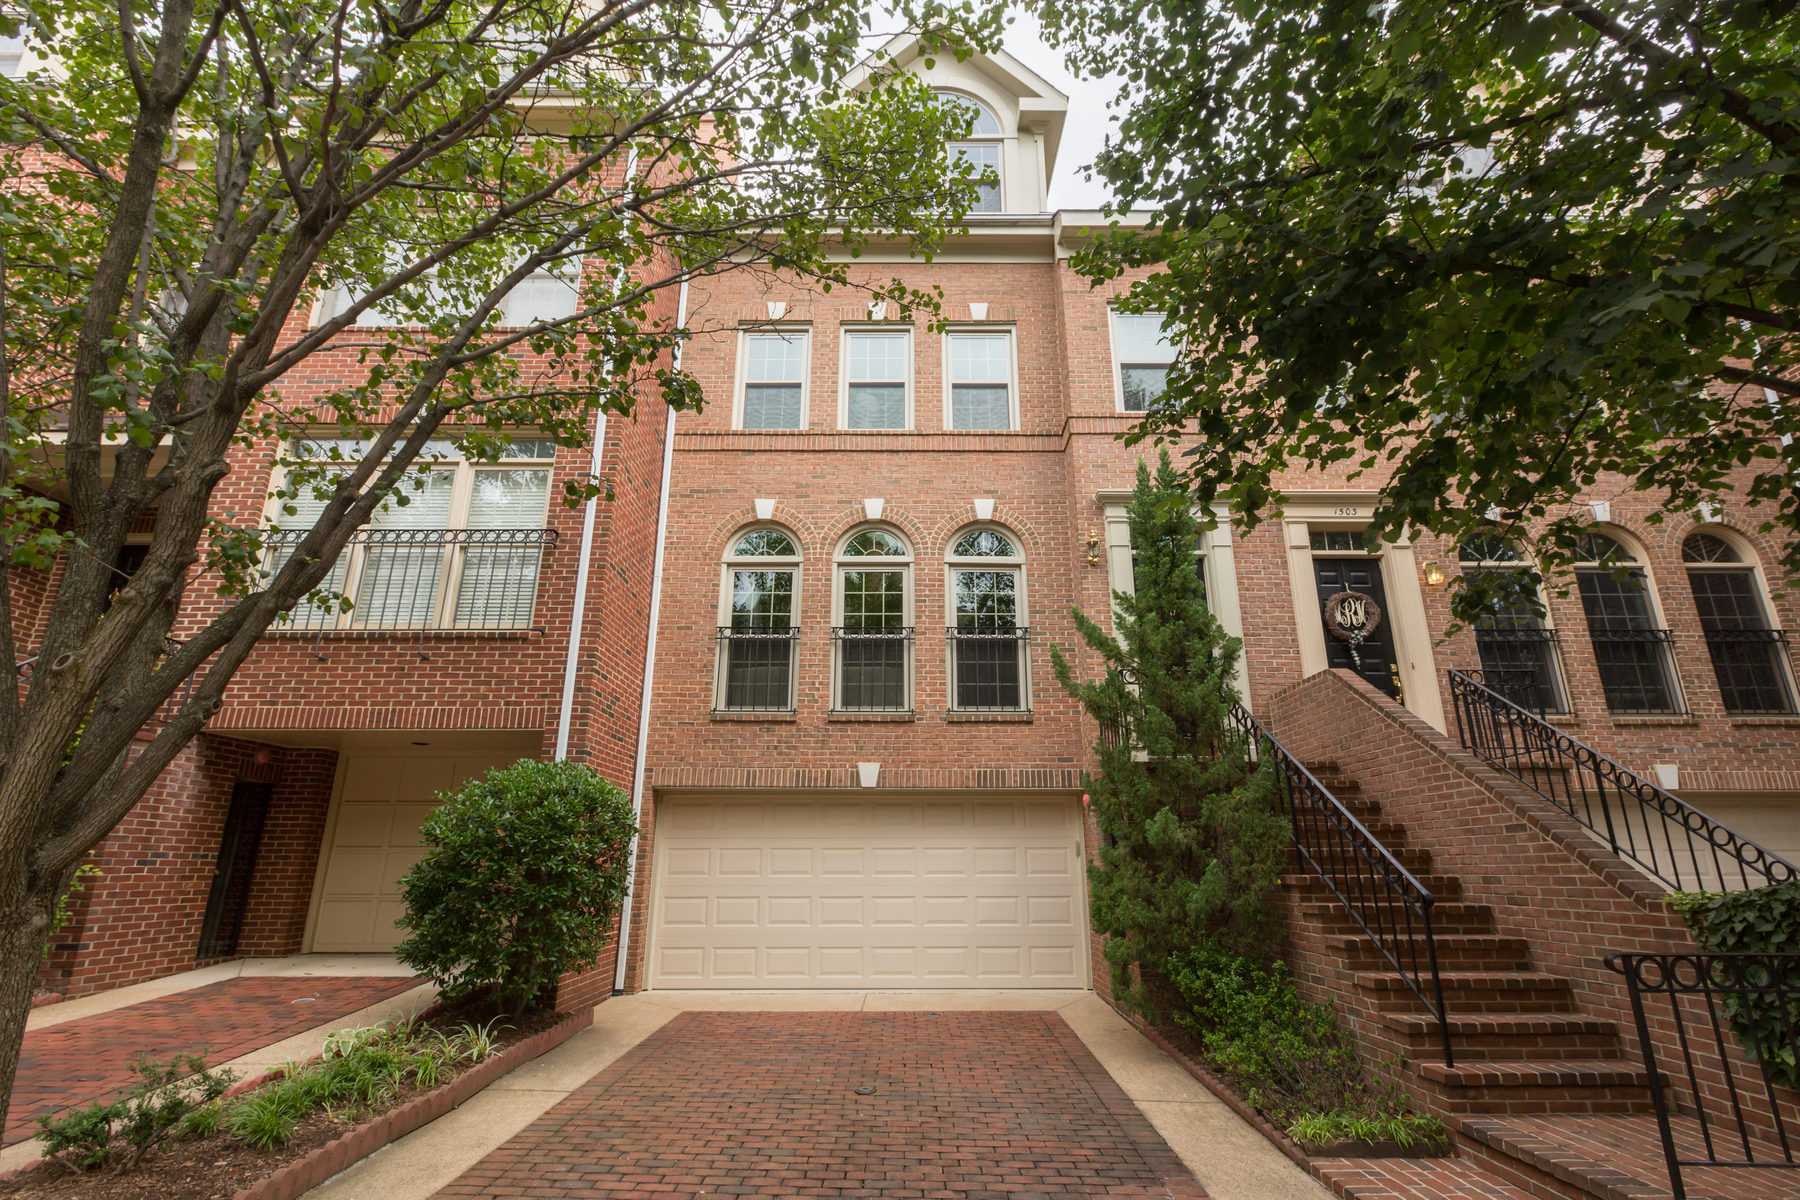 Townhouse for Sale at 1505 N Colonial Ct, Arlington Arlington, Virginia 22209 United States